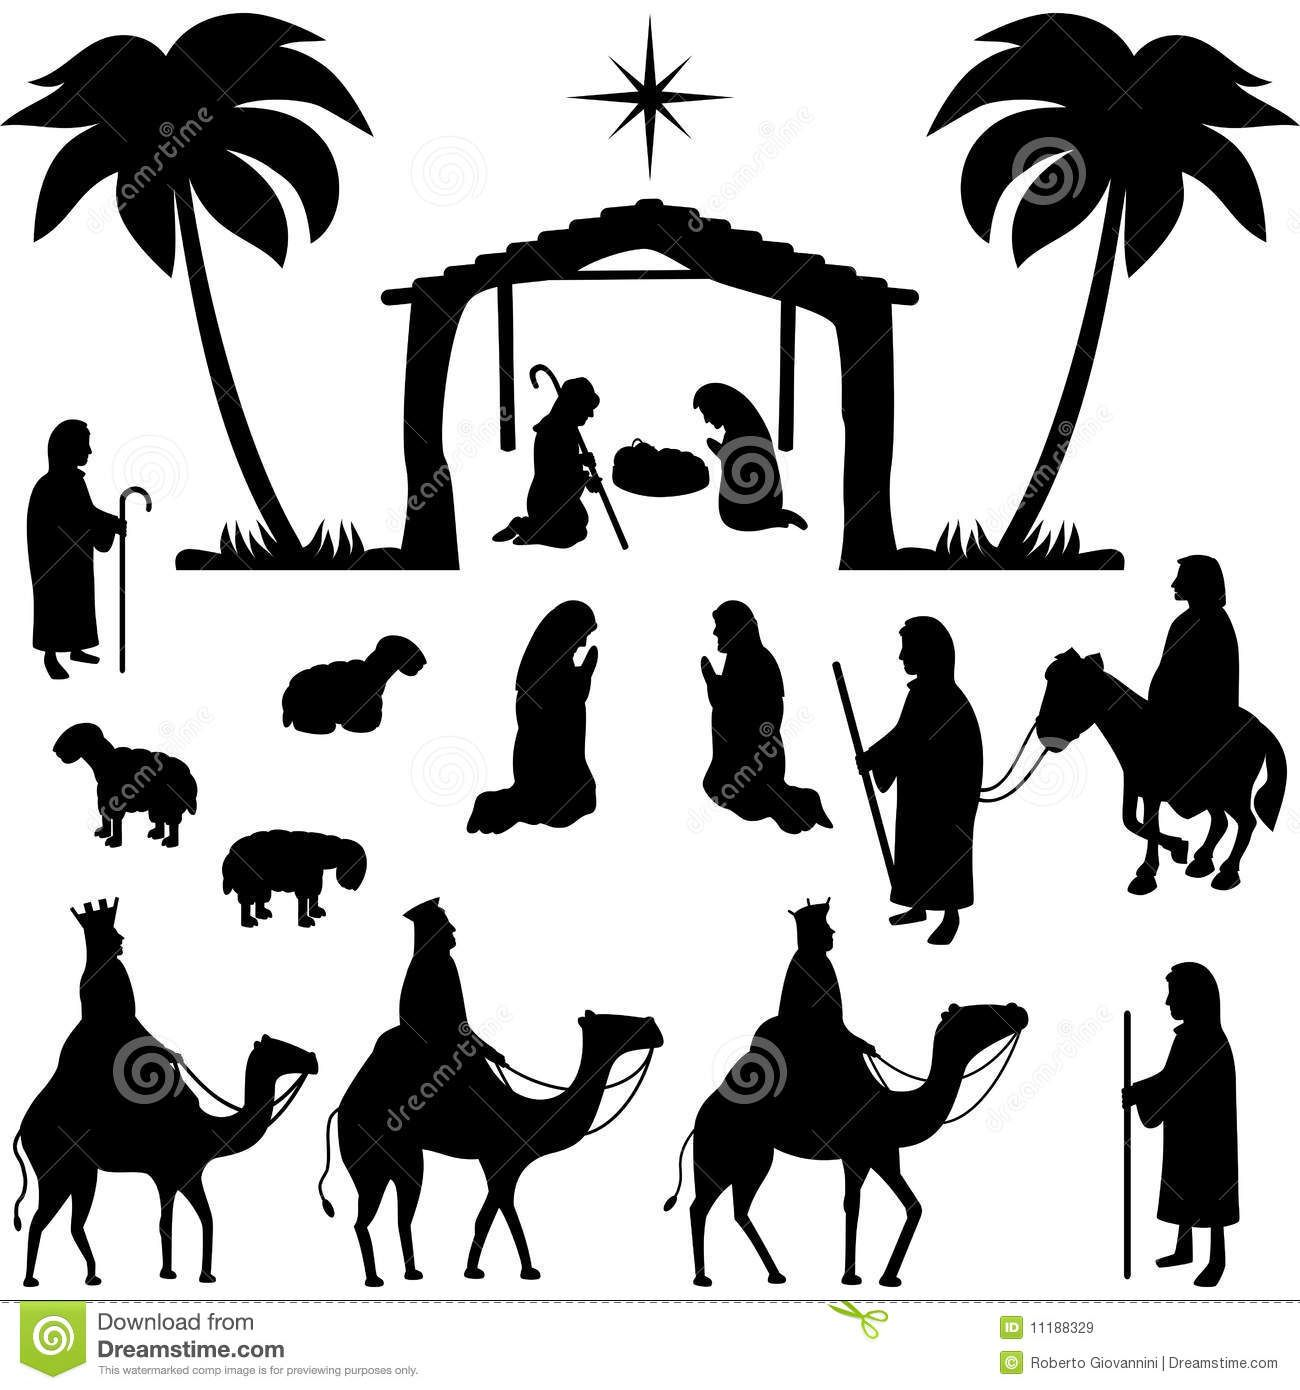 nativity silhouettes collection download from over 27 million high quality stock photos images vectors sign up for free today image 11188329 [ 1300 x 1390 Pixel ]